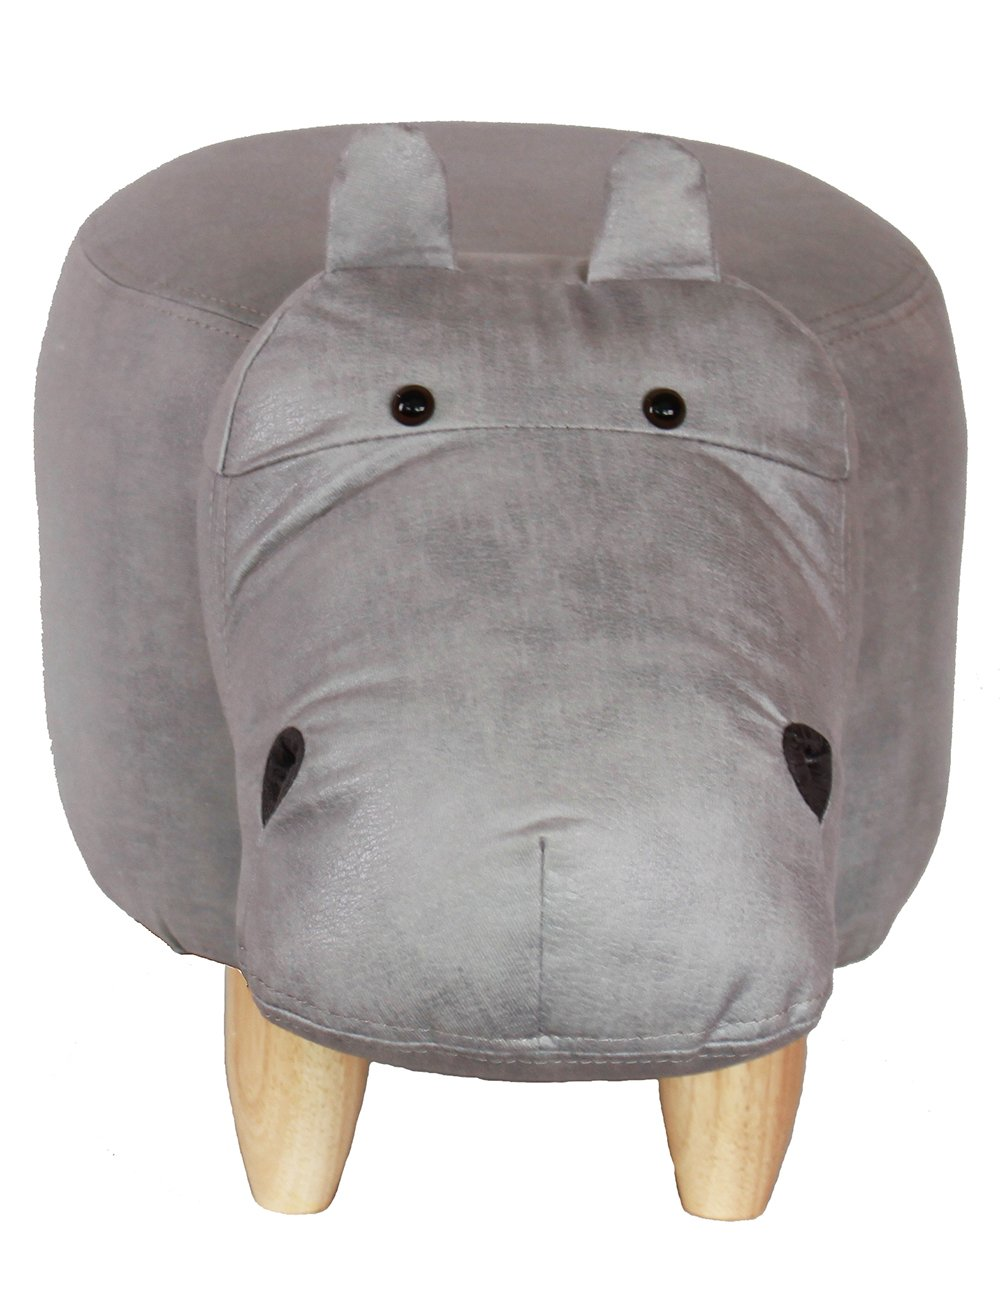 HAOSOON Animal ottoman Series Ottoman Footrest Stool with Vivid Adorable Animal-Like Features(Hippo) (grey) by HAOSOON (Image #4)